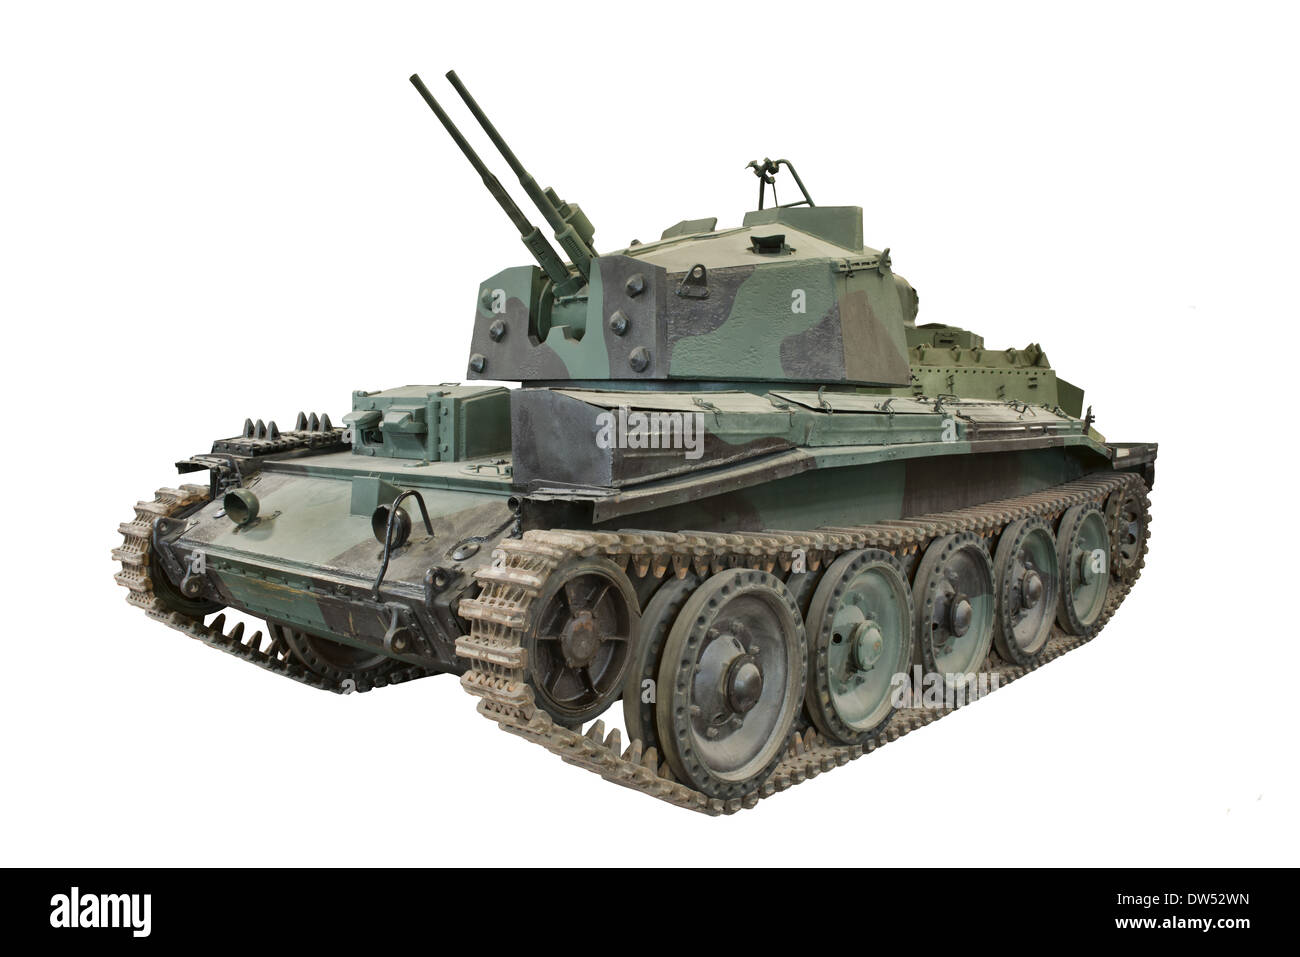 A Cut out of a British Crusader III AA II Tank anti aircraft System used by allied forces after the D Day landings - Stock Image